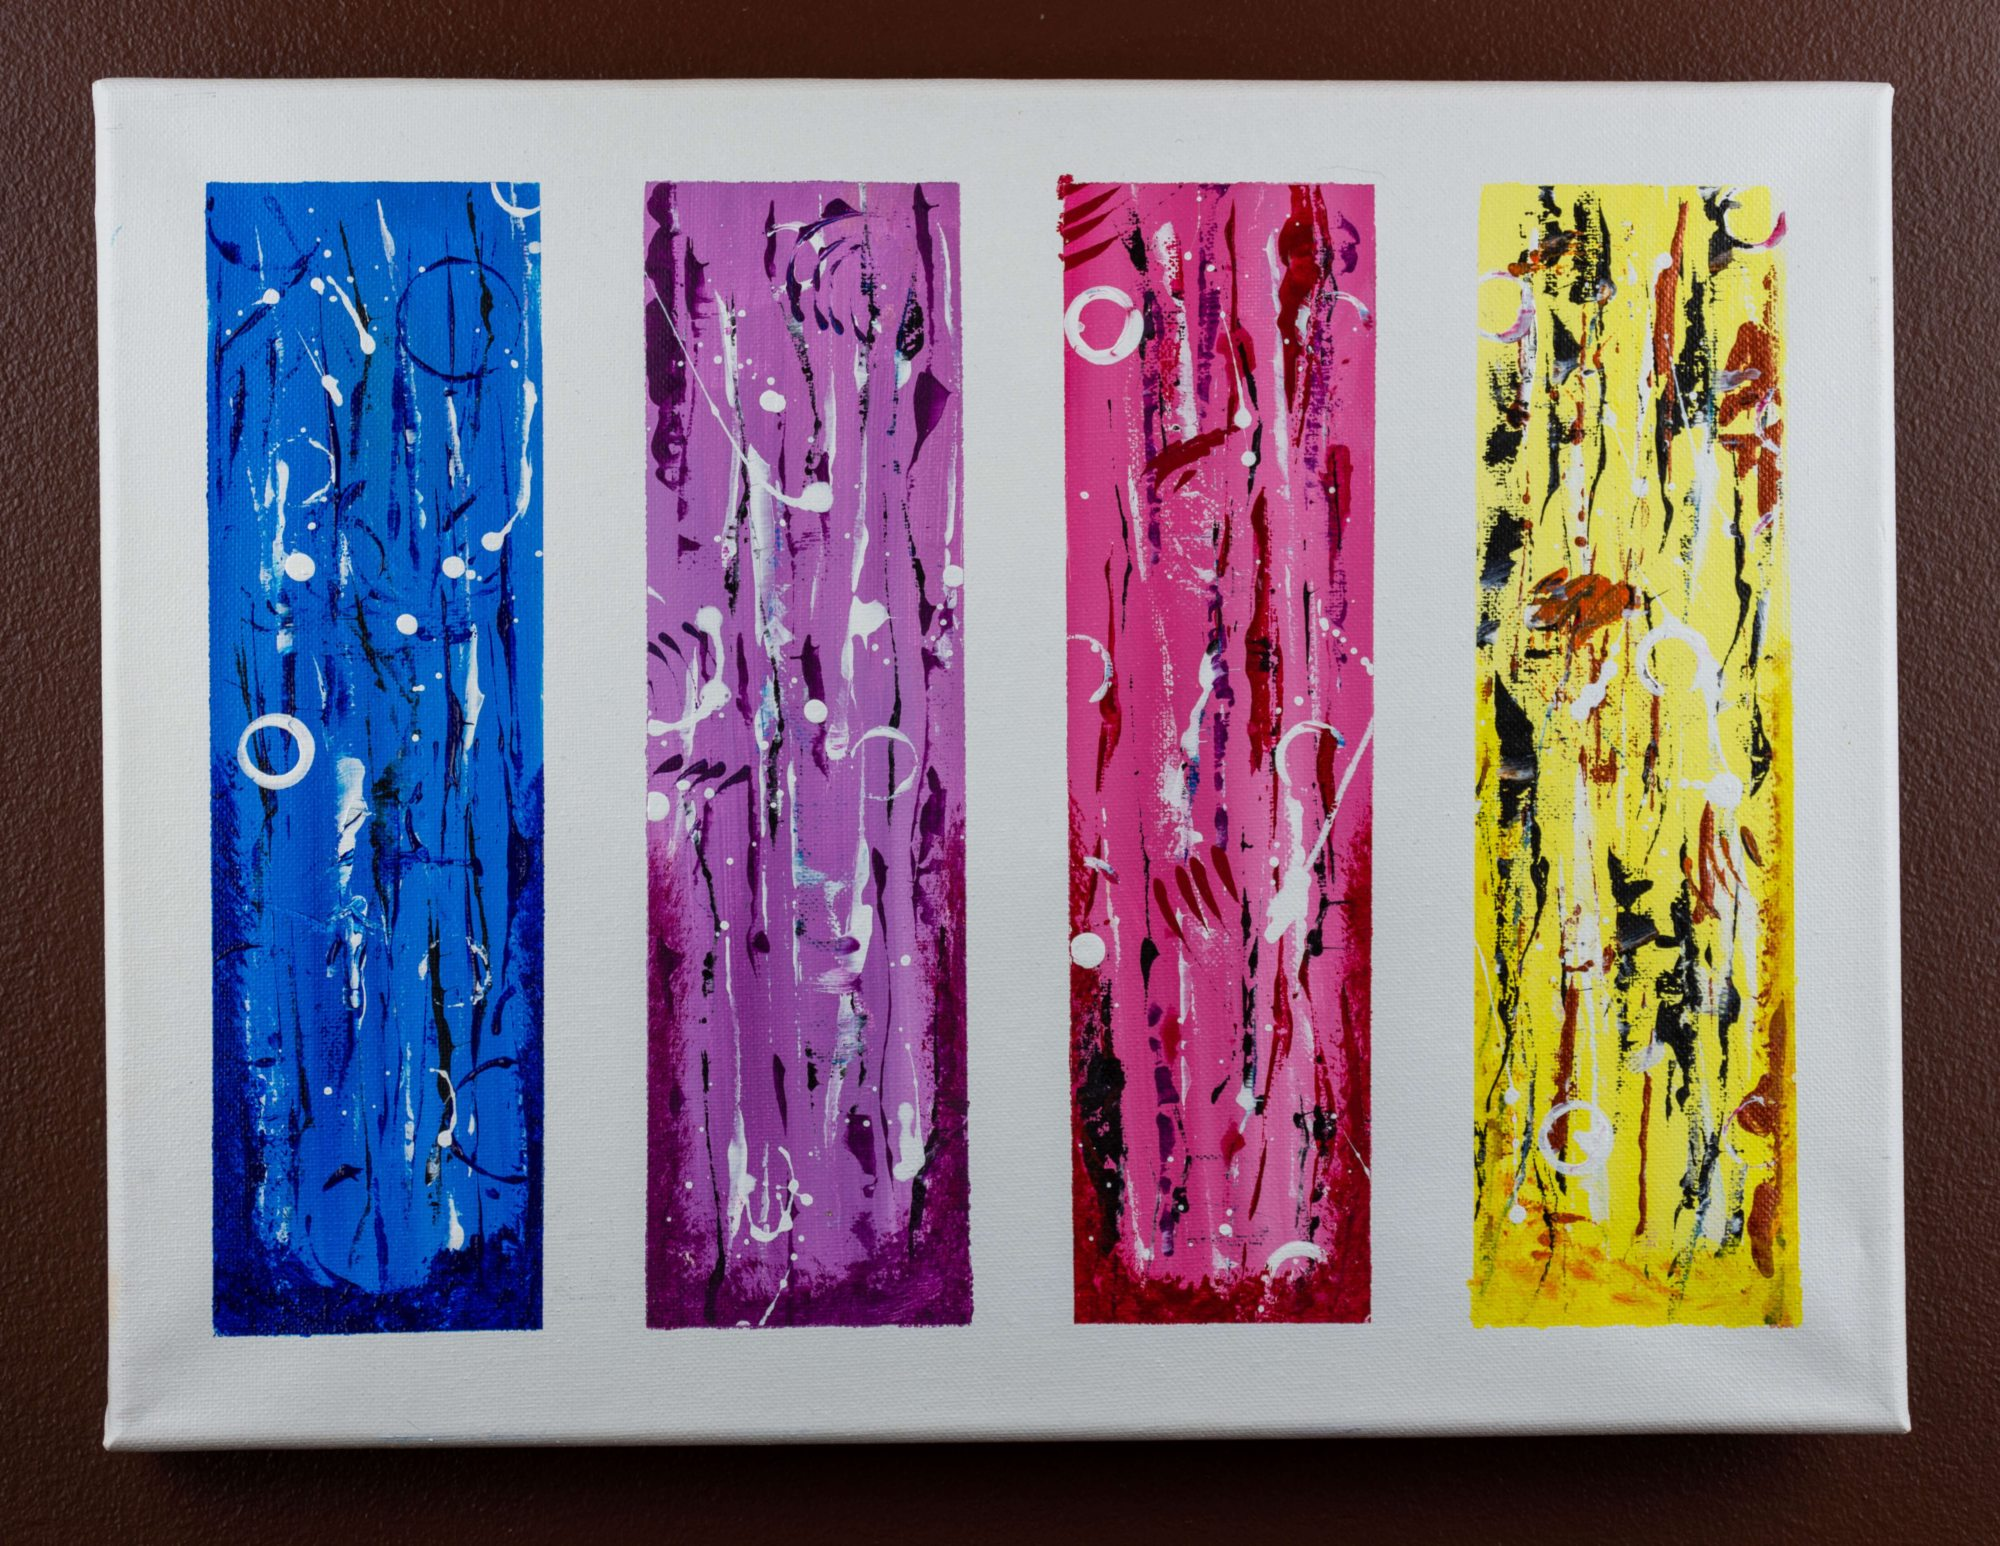 Under the sea - abstract art - blue - white - purple - pink - red - black - yellow - orange - size 16in x 12in